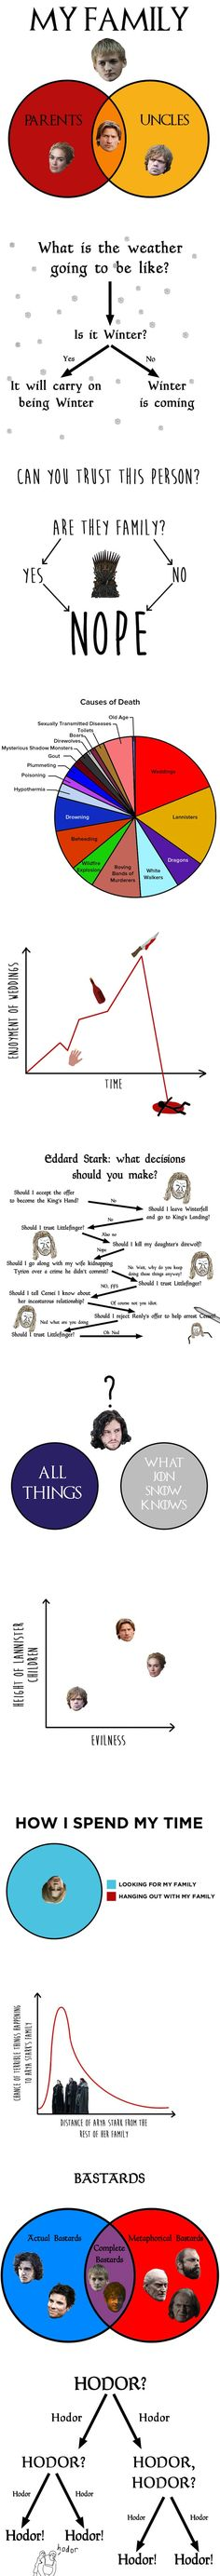 12 Charts Only Game Of Thrones Fans Will Understand | ROFL World